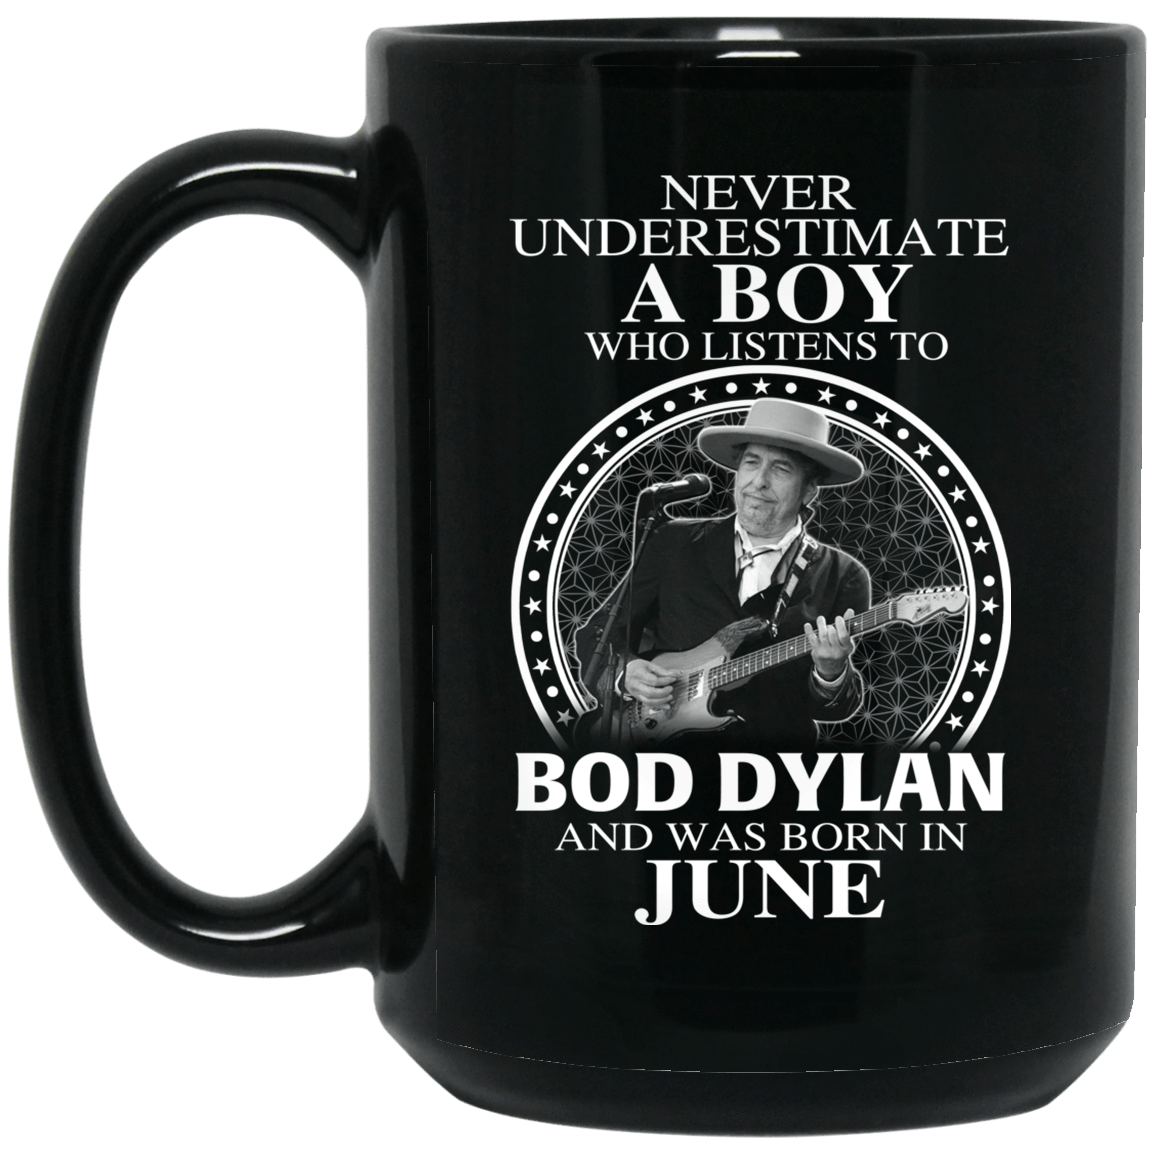 A Boy Who Listens To Bob Dylan And Was Born In June Mug 1066-10182-76153791-49311 - Tee Ript